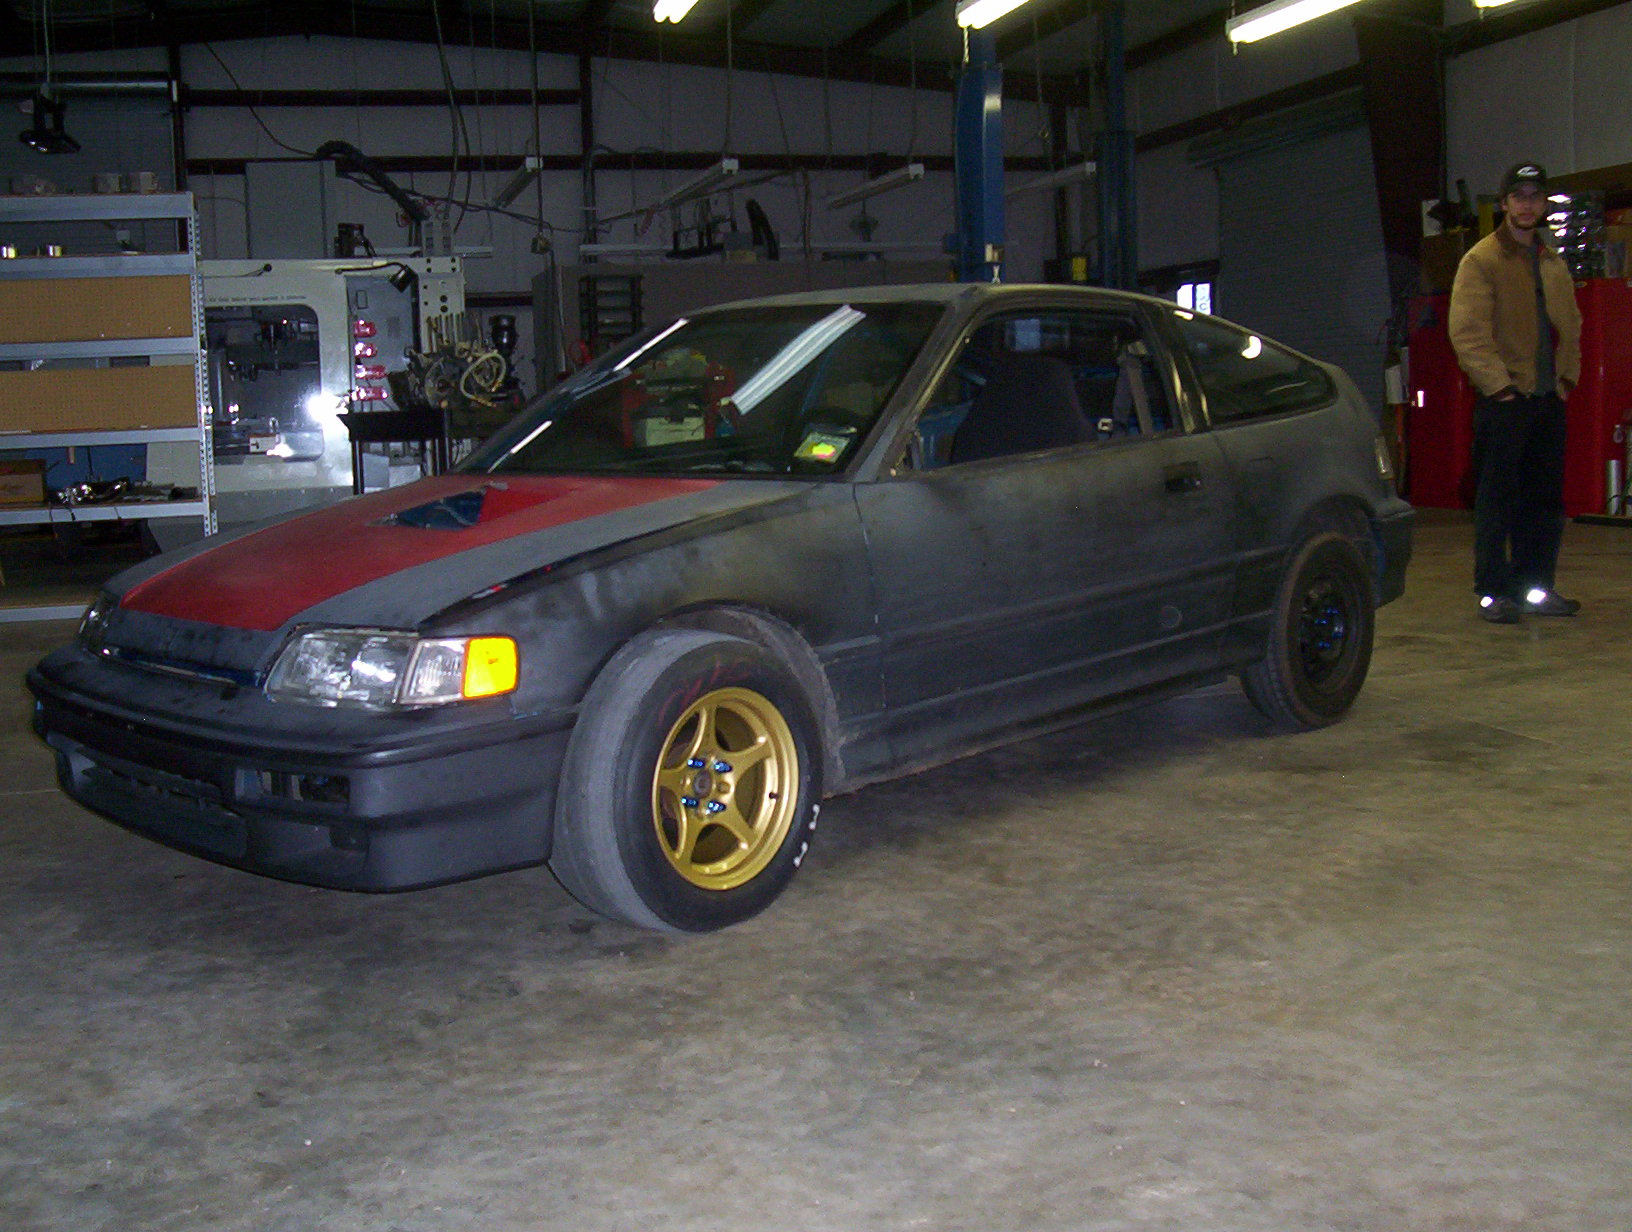 1991 Honda Civic CRX LS/VTEC 1/8 mile Drag Racing timeslip 0-60